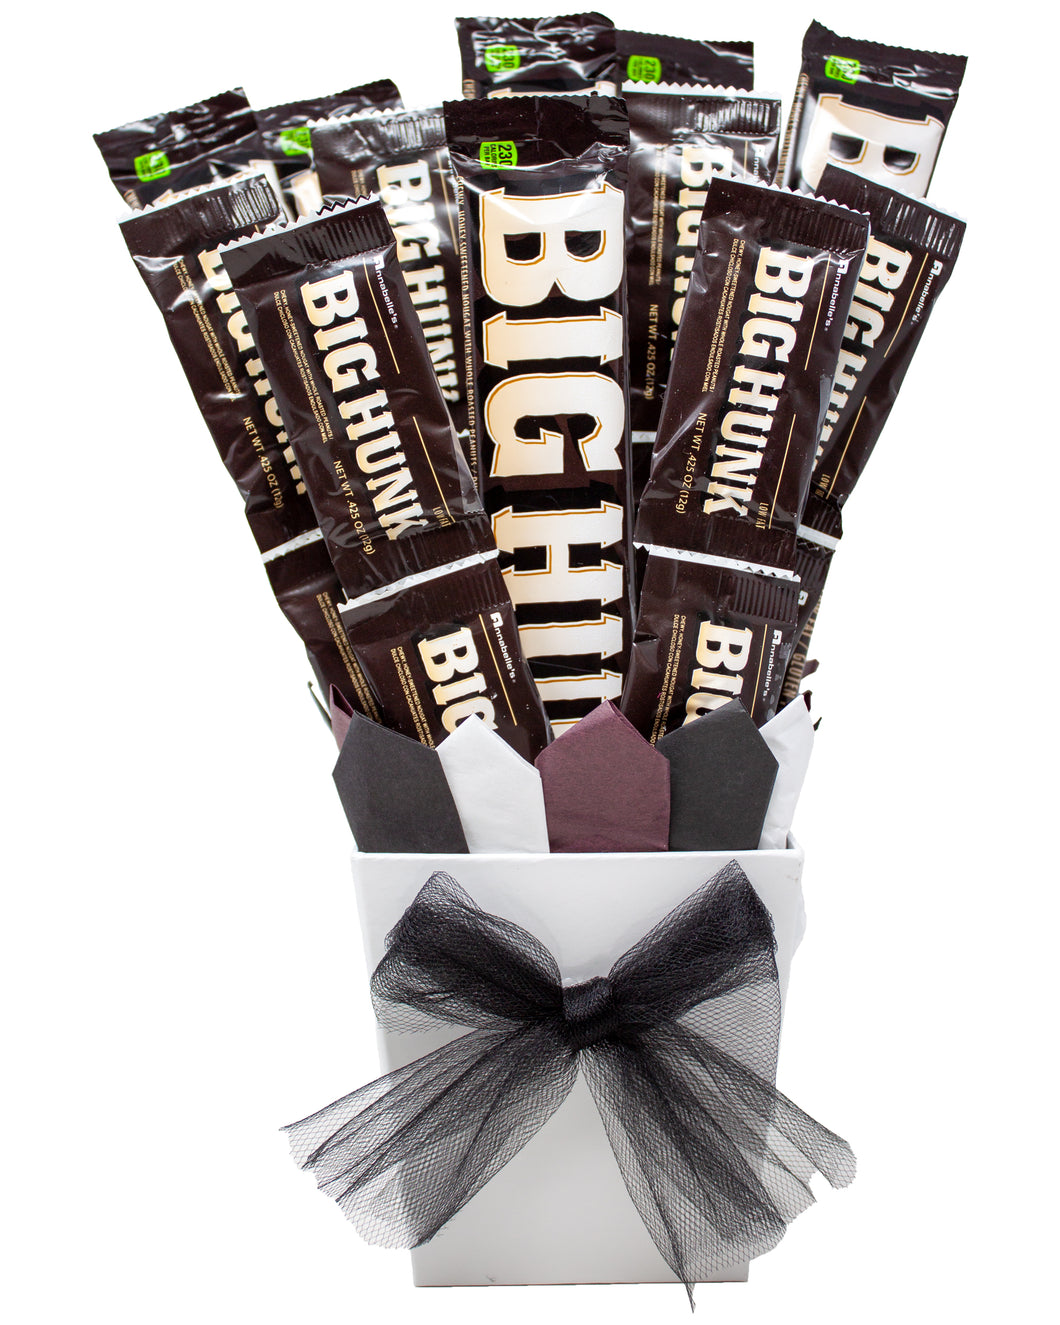 Big Hunk Candy Bouquet Sinfully Delicious